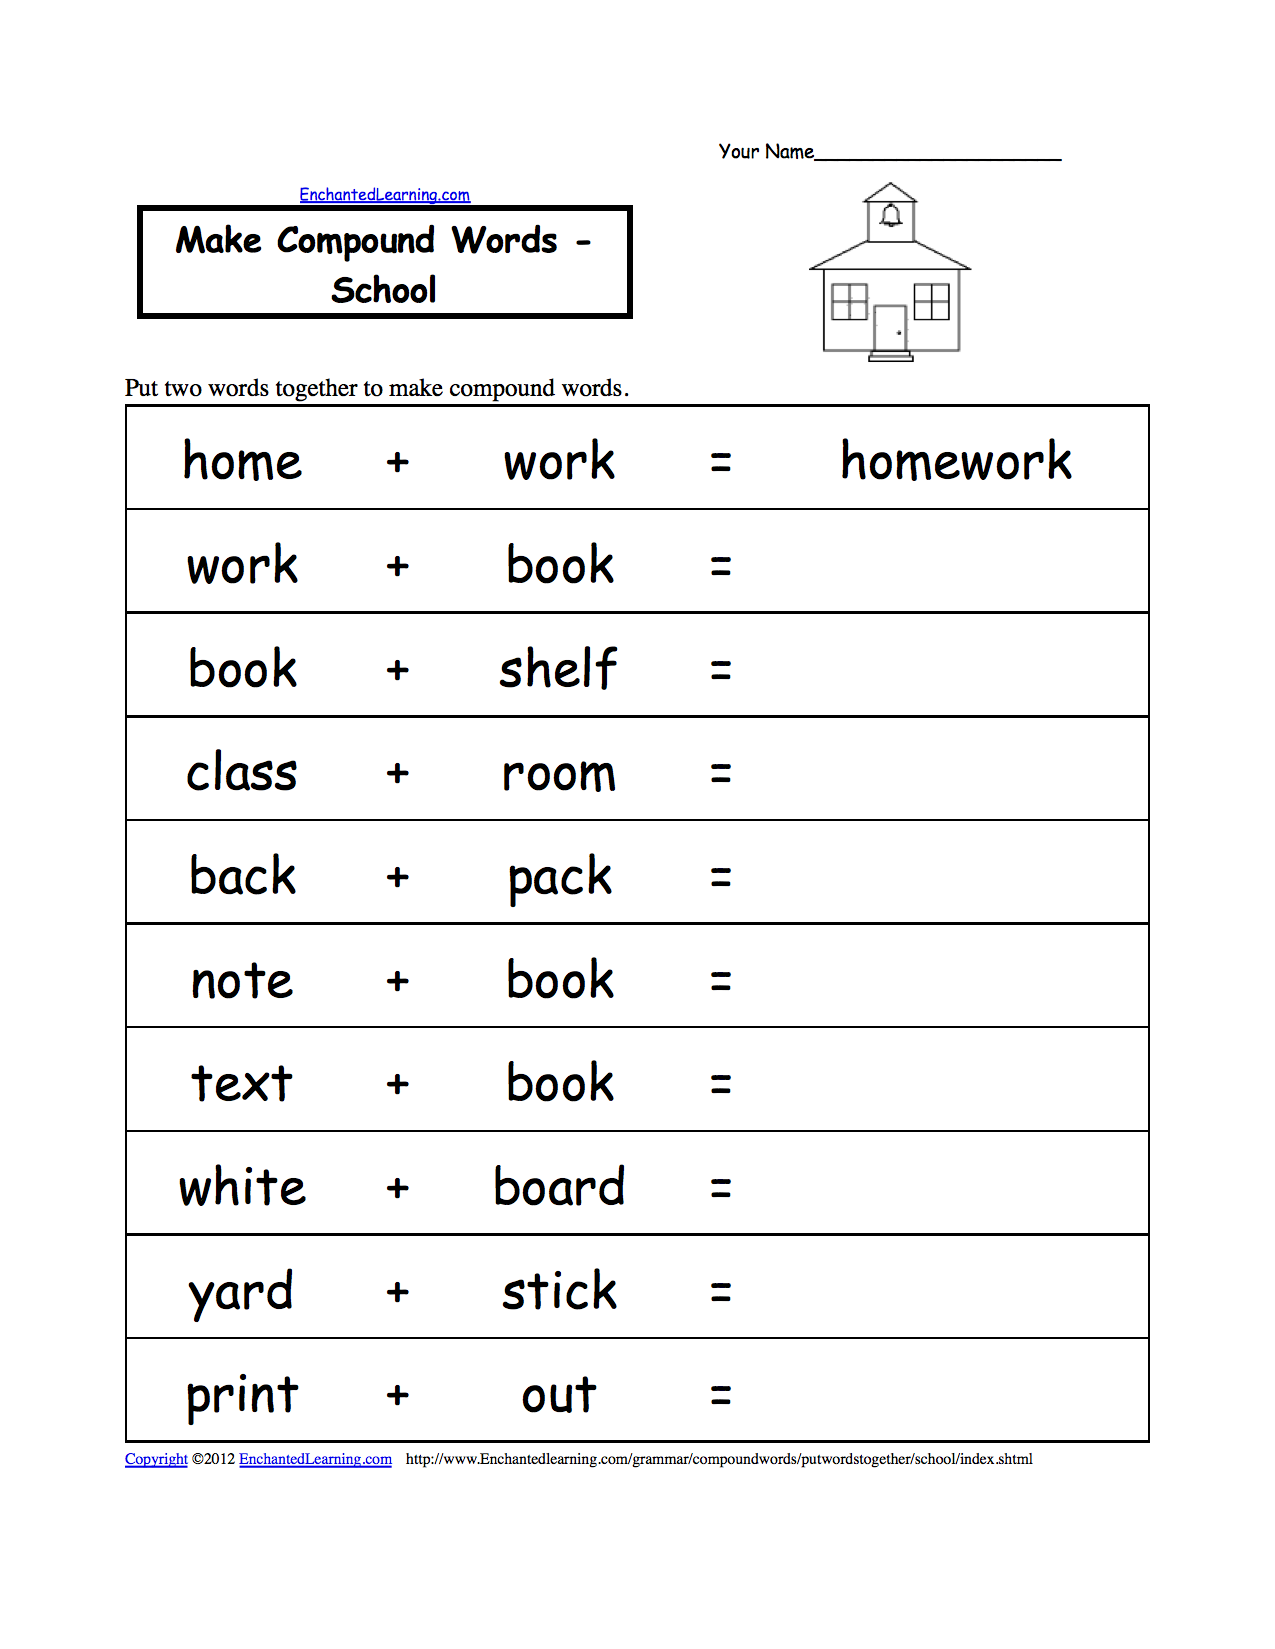 Worksheet First Grade Compound Words compound words worksheets first grade laptuoso 1000 images about on pinterest groundhog day